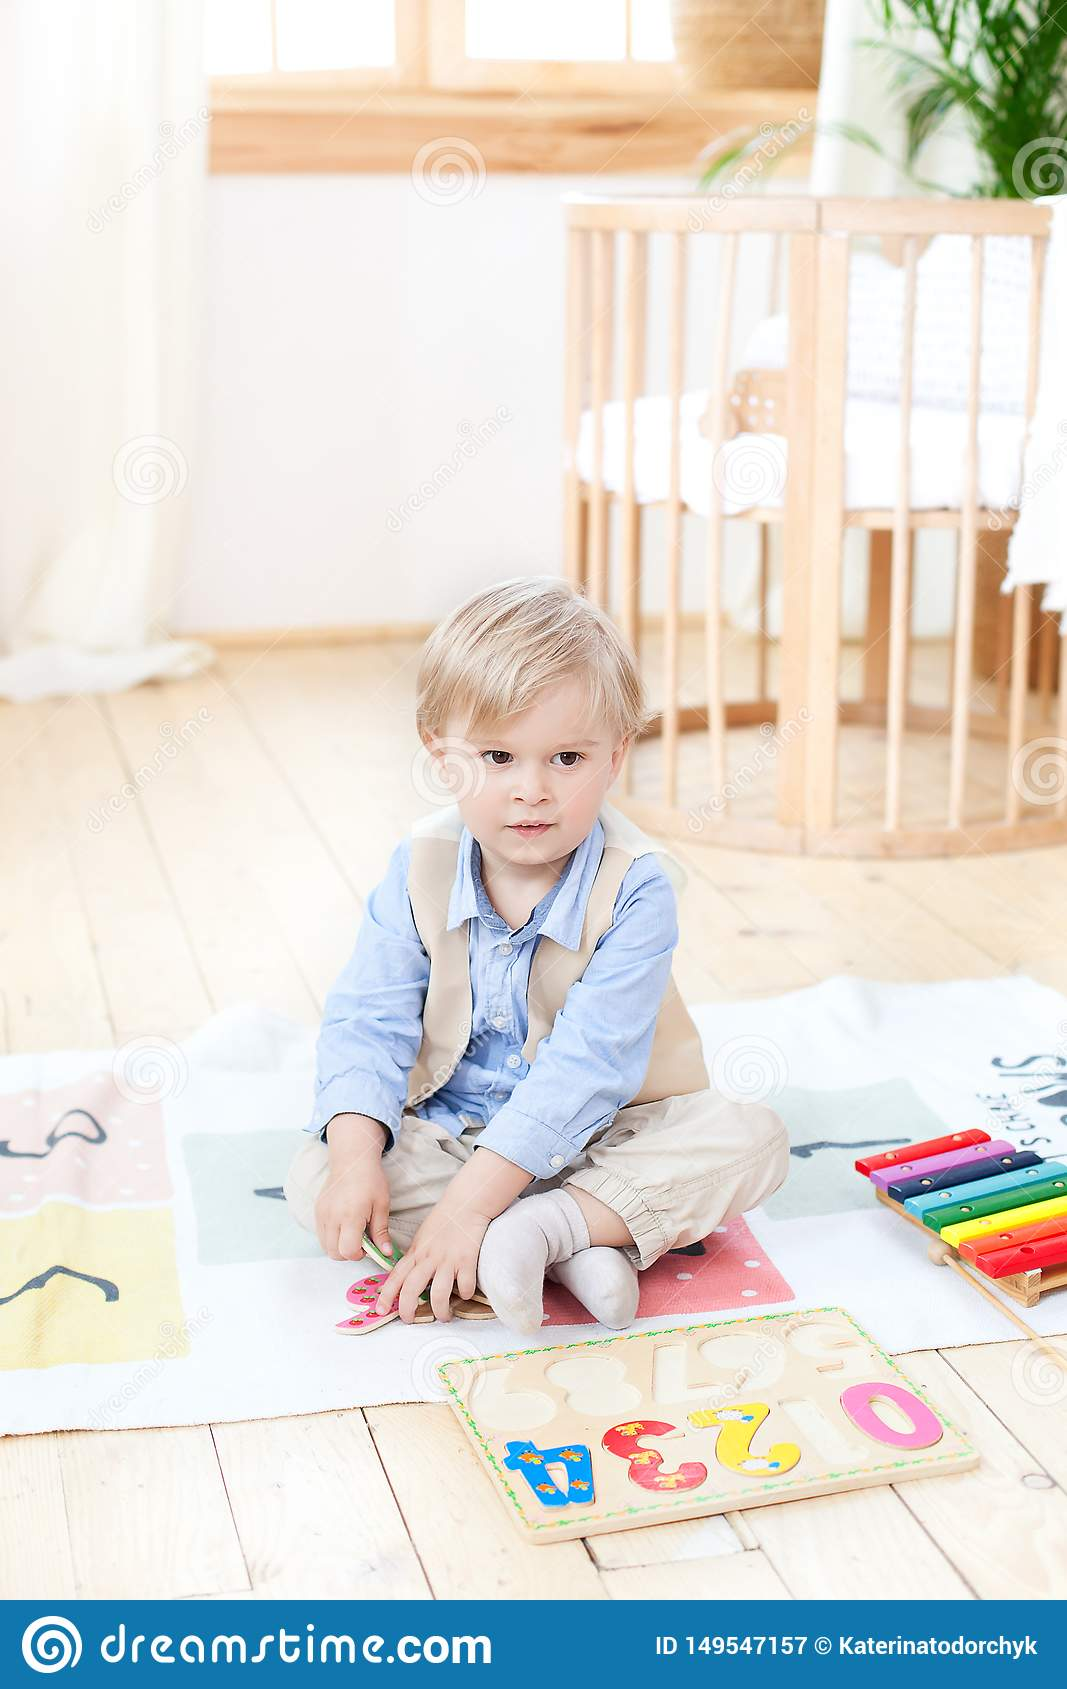 The boy plays with wooden toys at home. Educational wooden toys for the child. Portrait of a boy sitting on the floor in the child